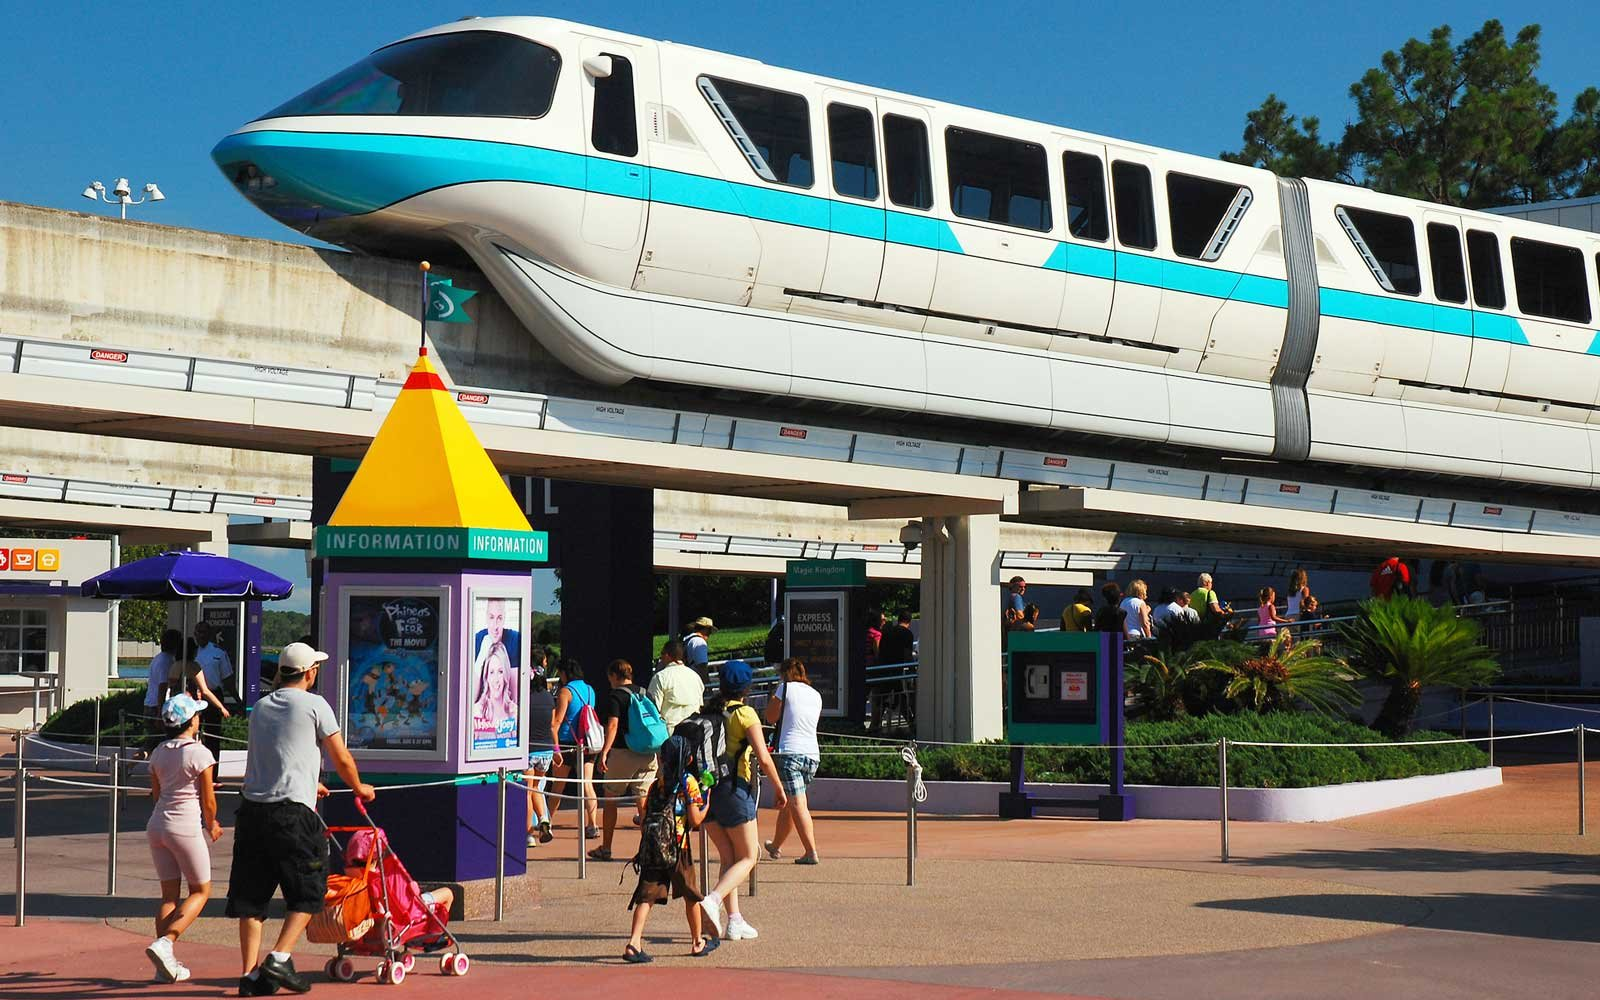 Disney Parks Ban Large Strollers, Smoking and Vaping, and Ice in Coolers